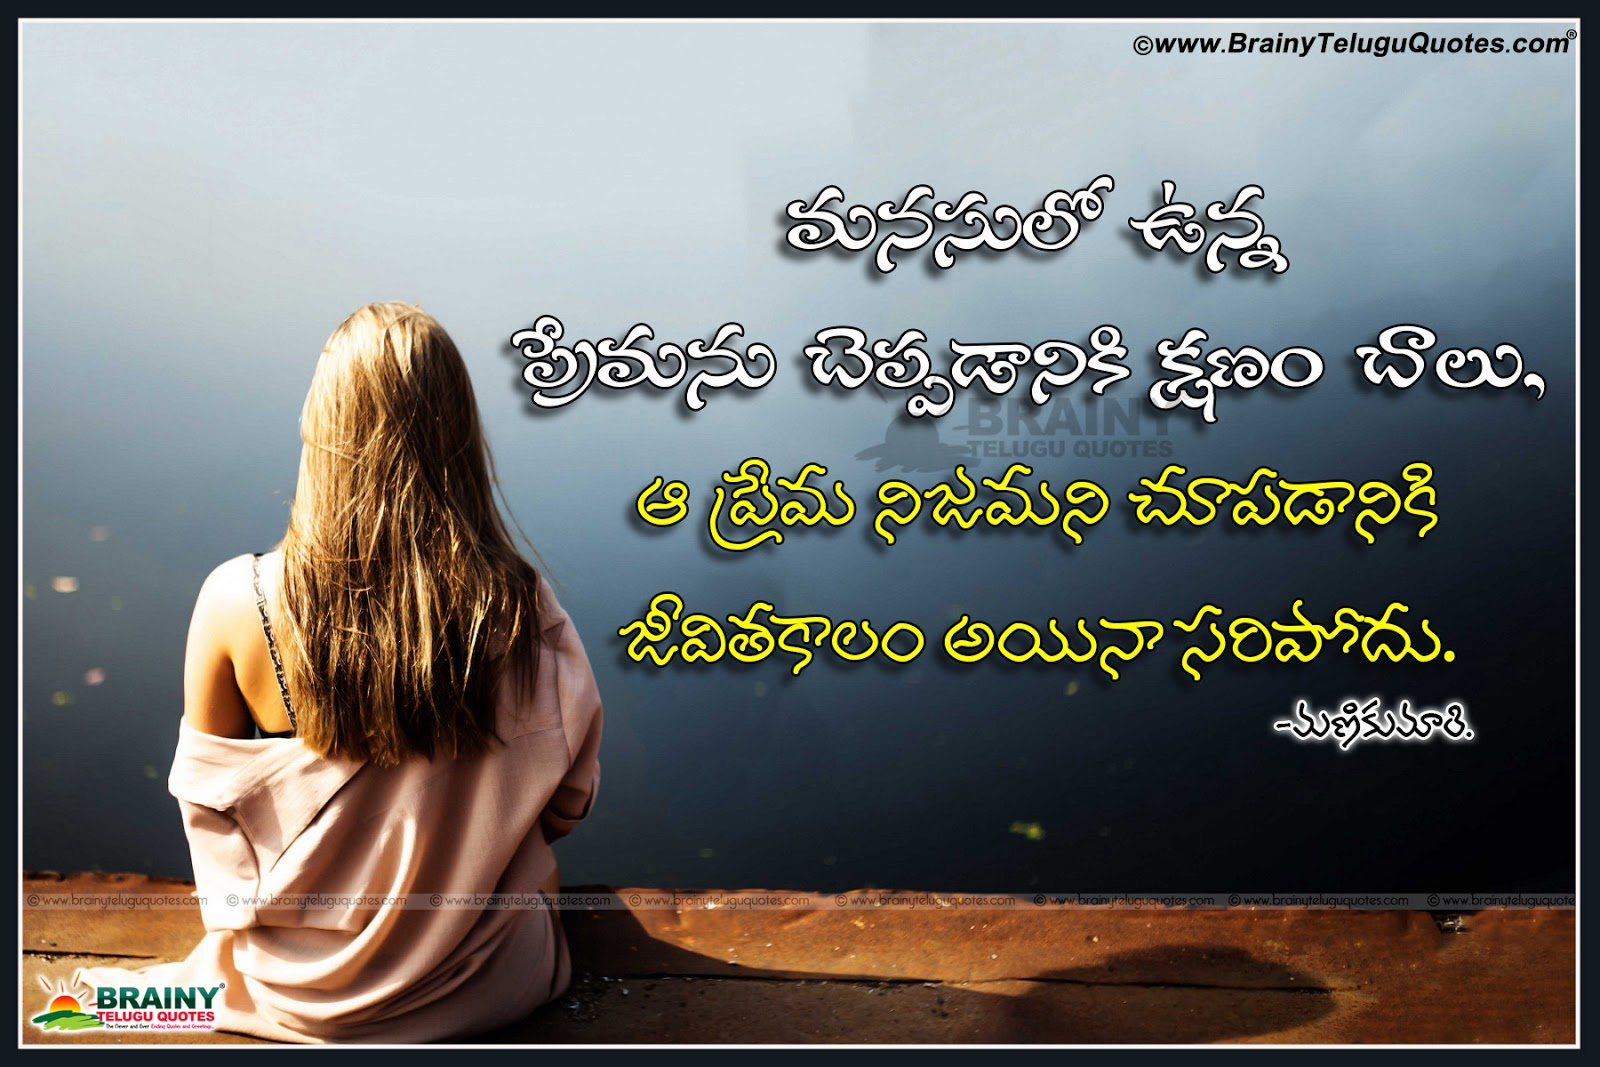 Touching Quotes About Friendship Friendship Breakup Quotes In Kannada Dosti Kannada Movie